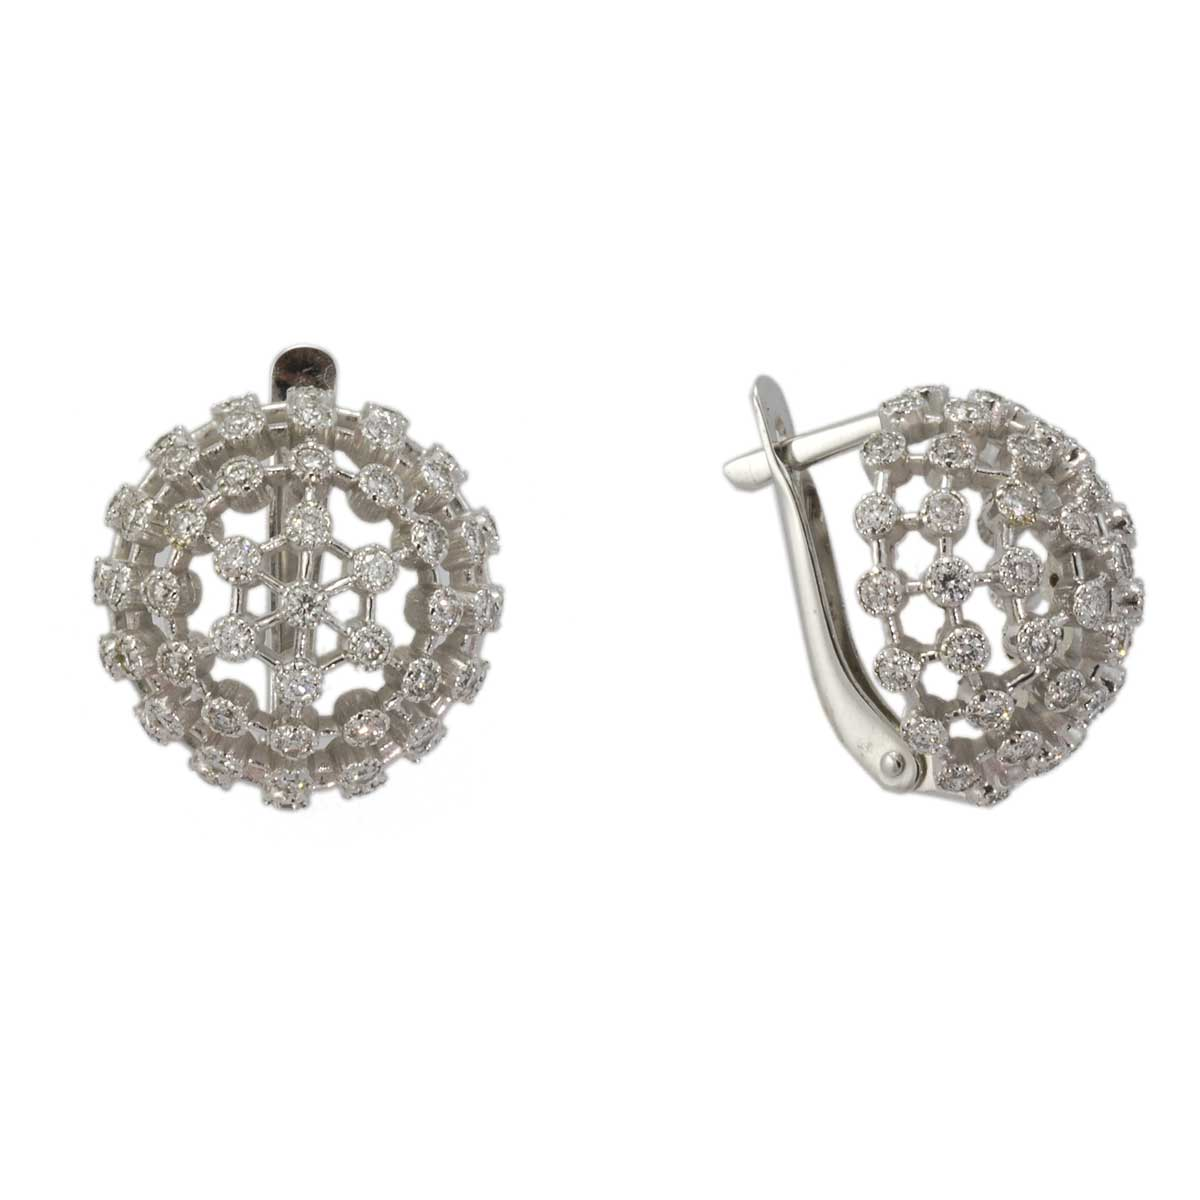 Diamond dandelion flower earrings 1